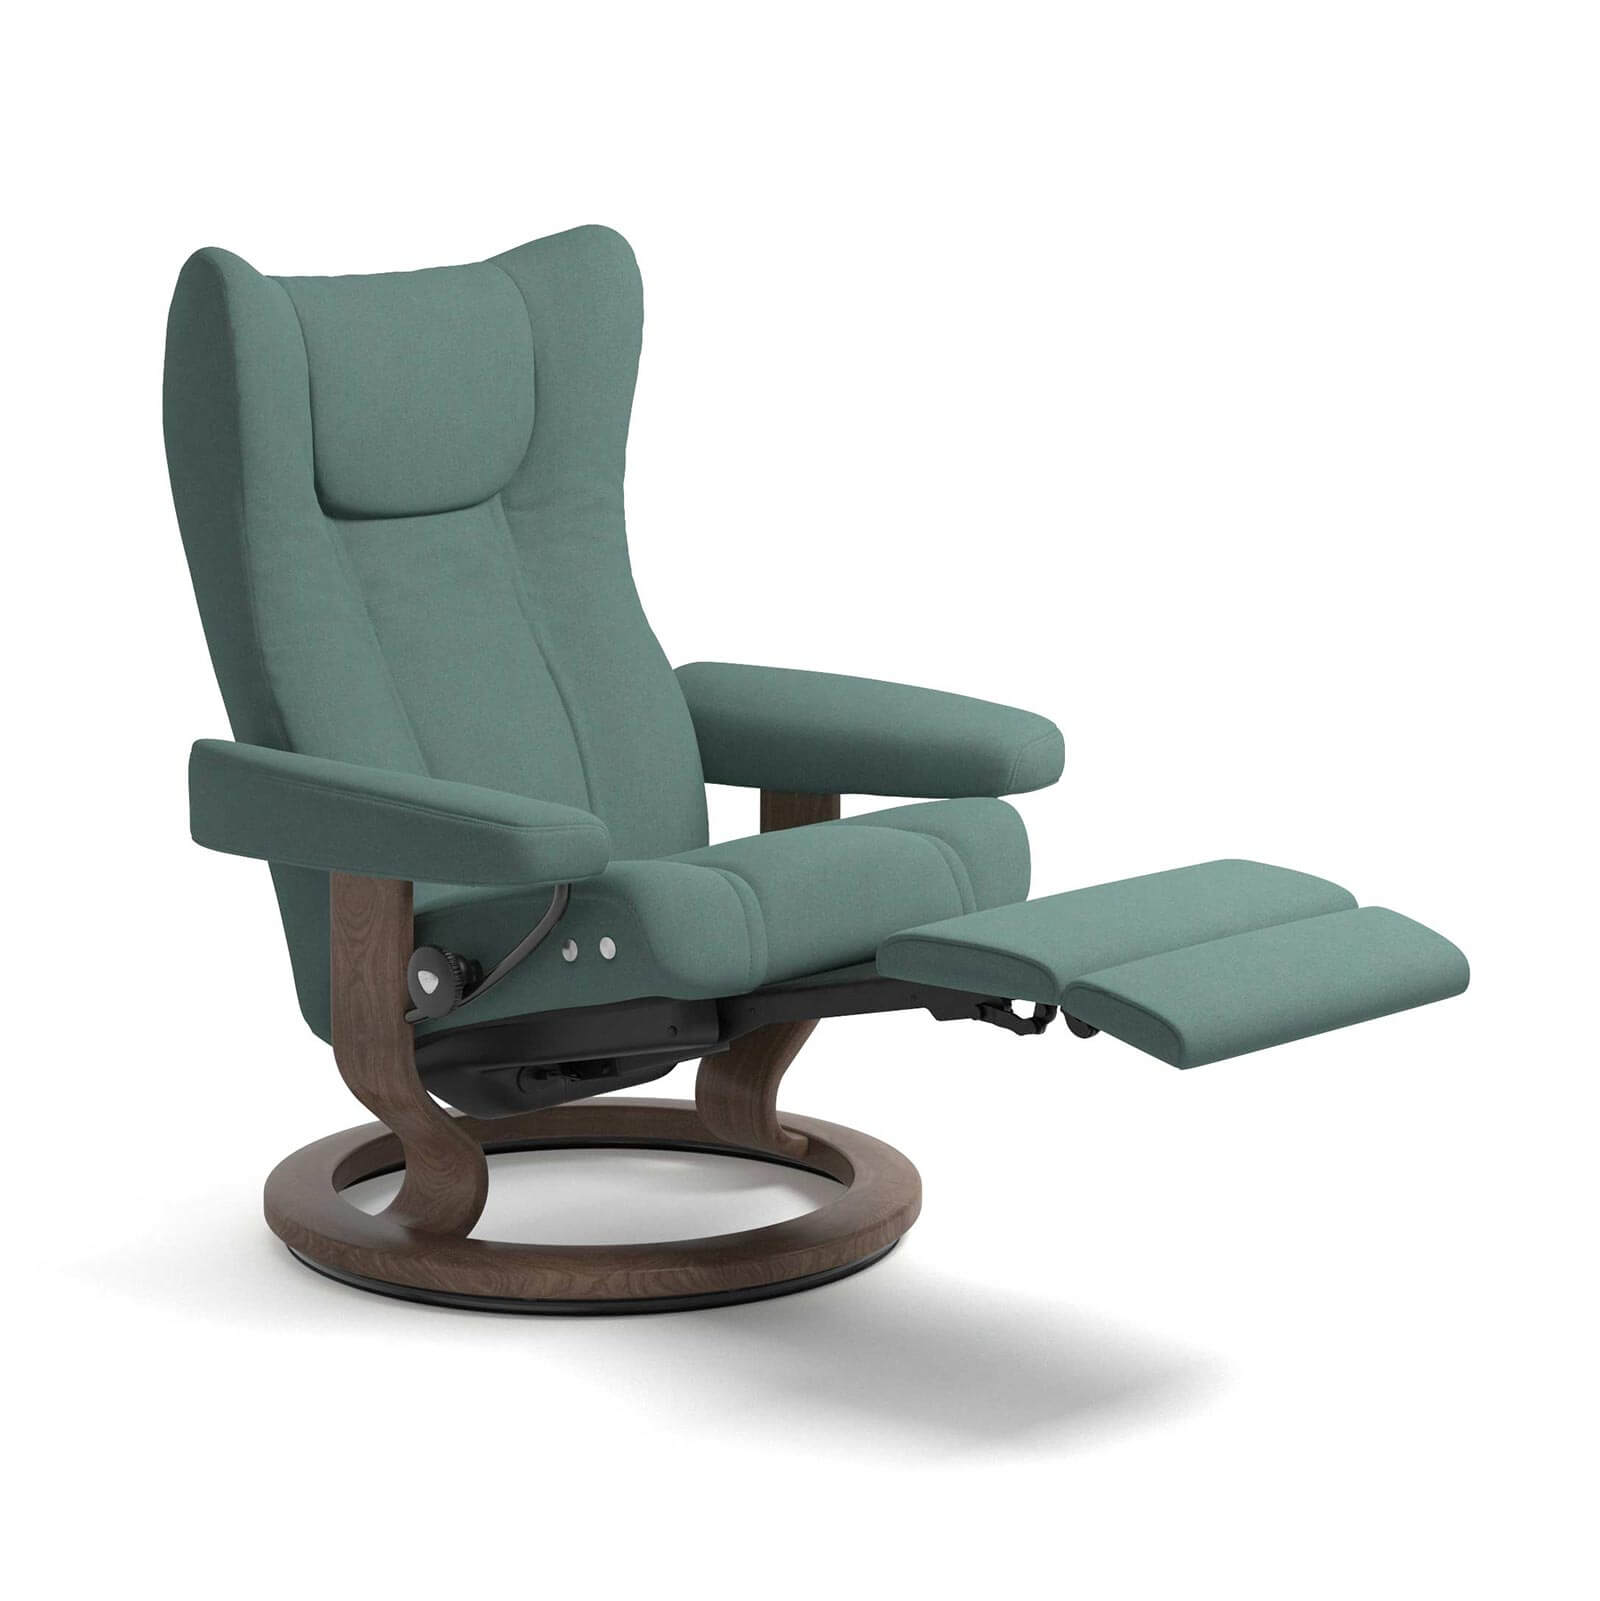 Stressless Sessel Höffner Stressless Sessel Wing Legcomfort Aqua Stressless Shop